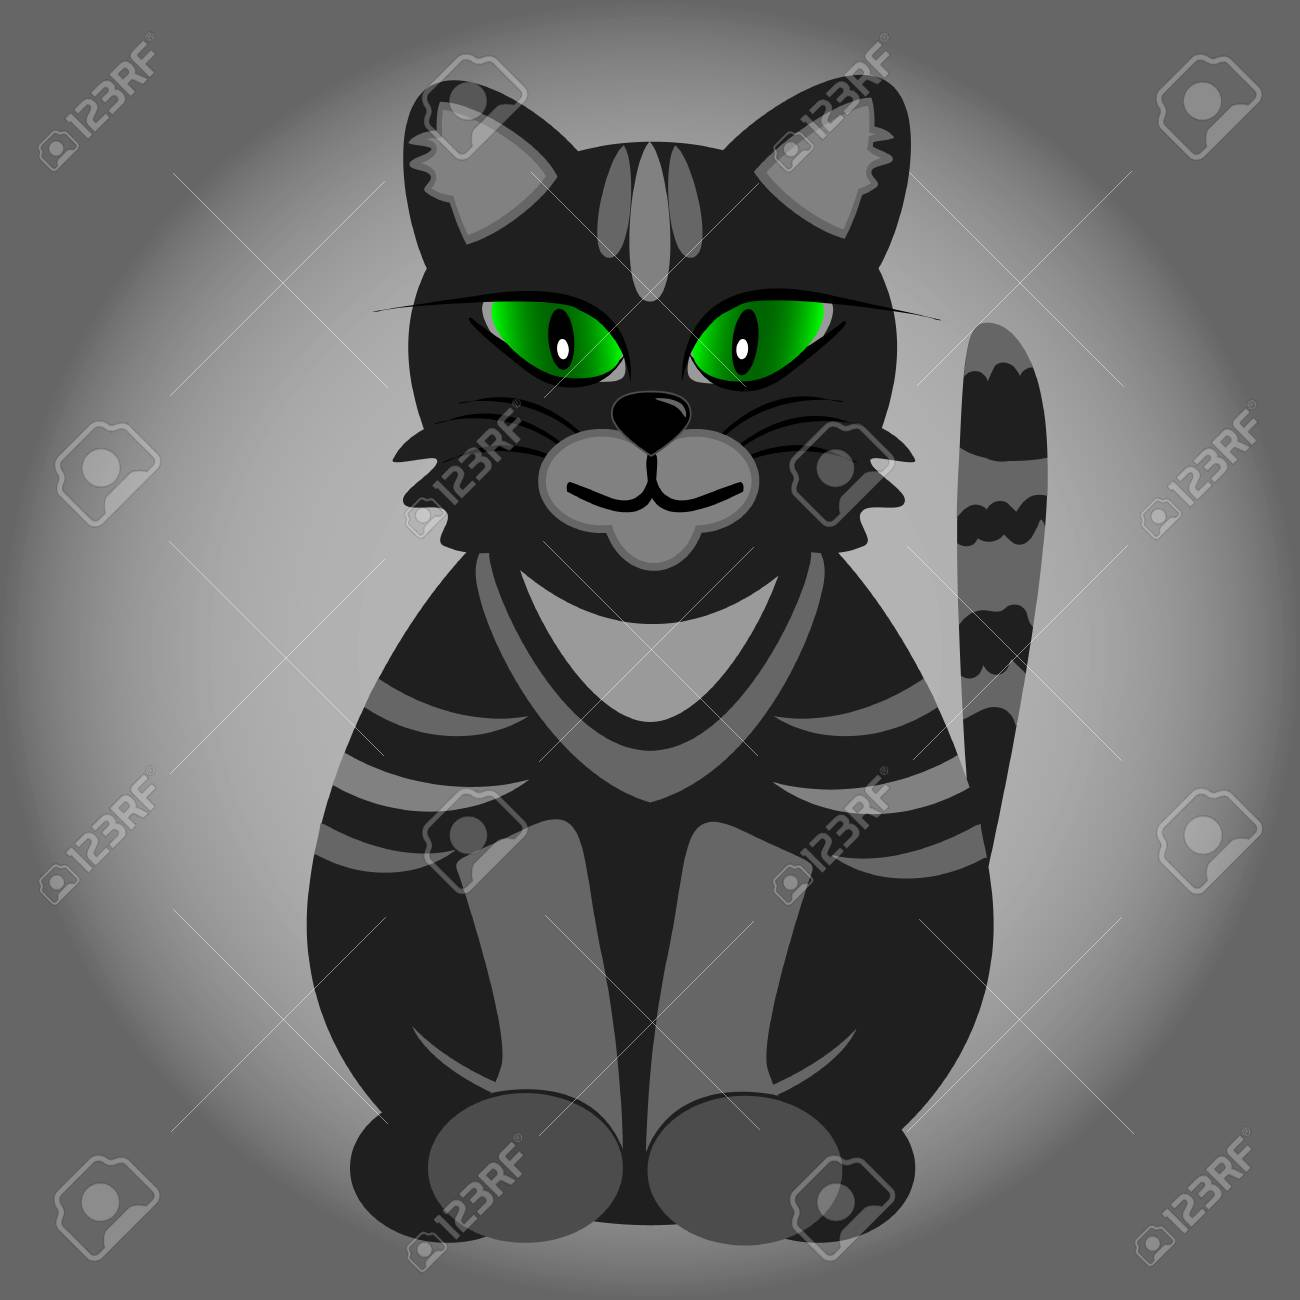 Cute Black Cat With Green Eyes Royalty Free Cliparts Vectors And